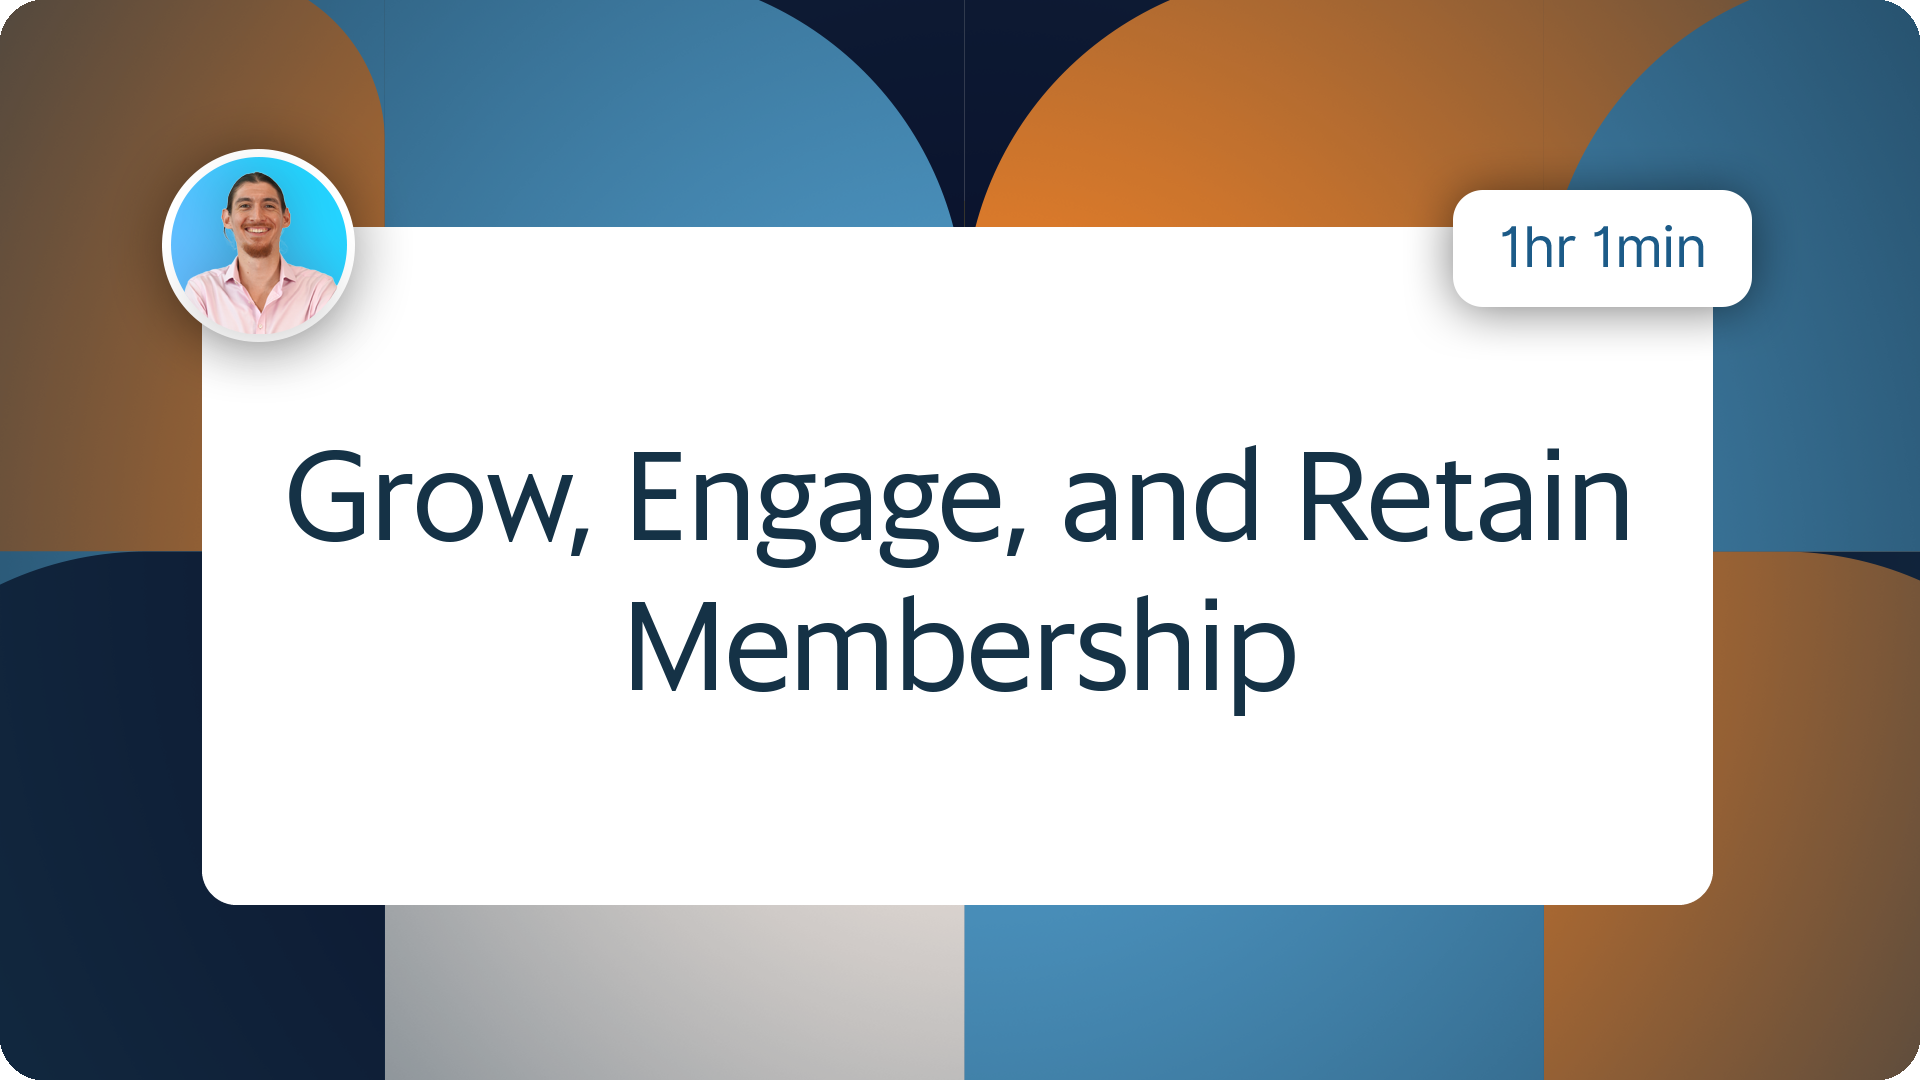 Grow, Engage, and Retain Membership